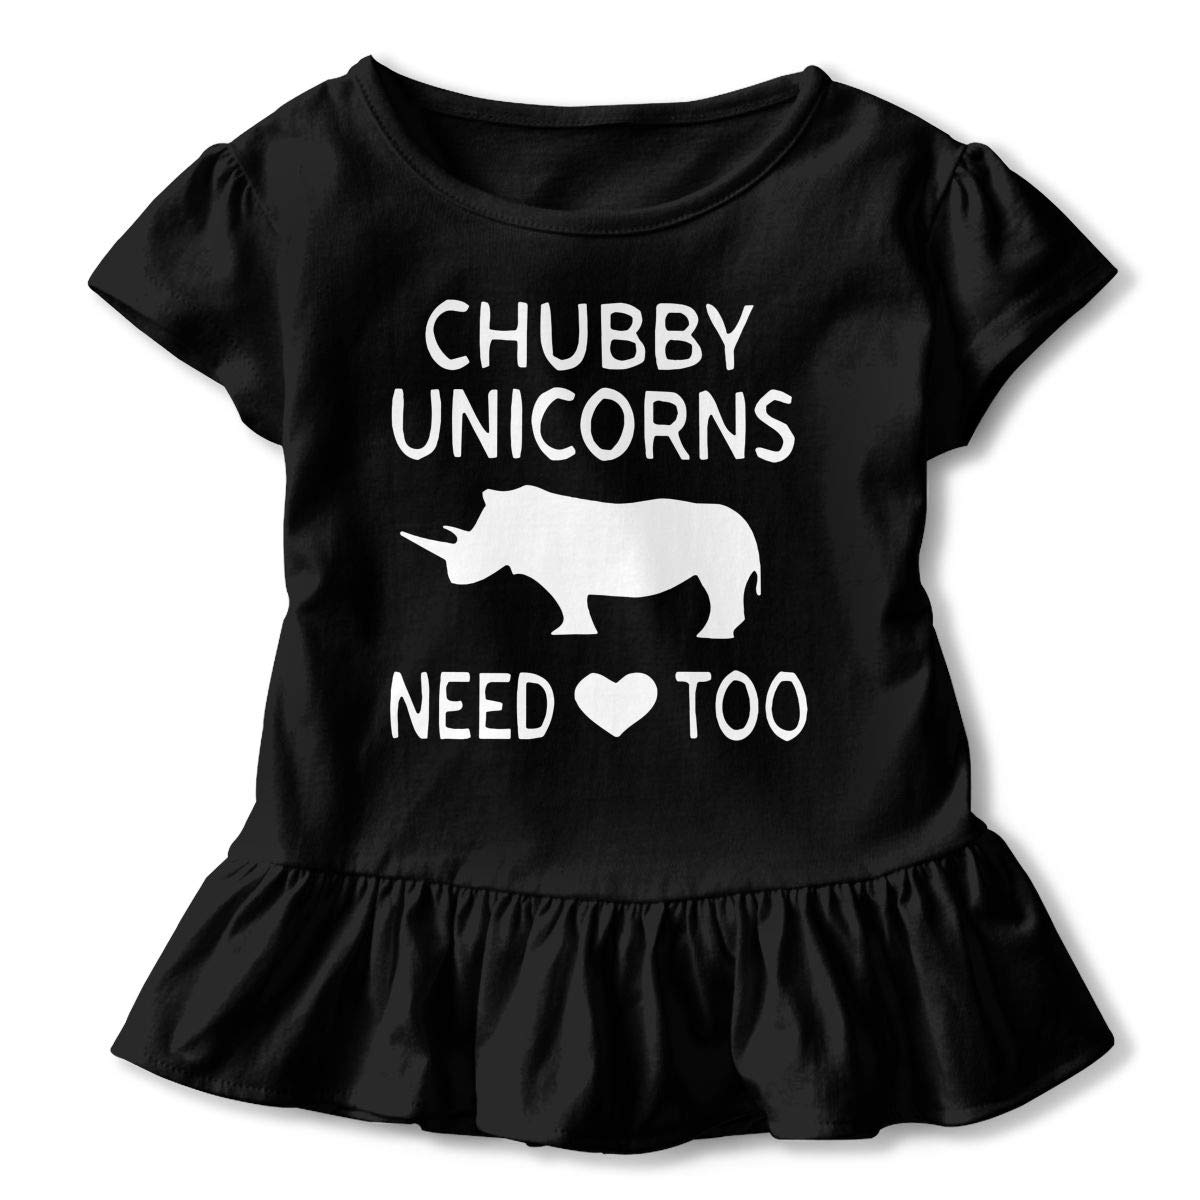 Chubby Unicorn Need Love Too Toddler//Infant Girls Short Sleeve Ruffles Shirt T-Shirt for 2-6 Toddlers